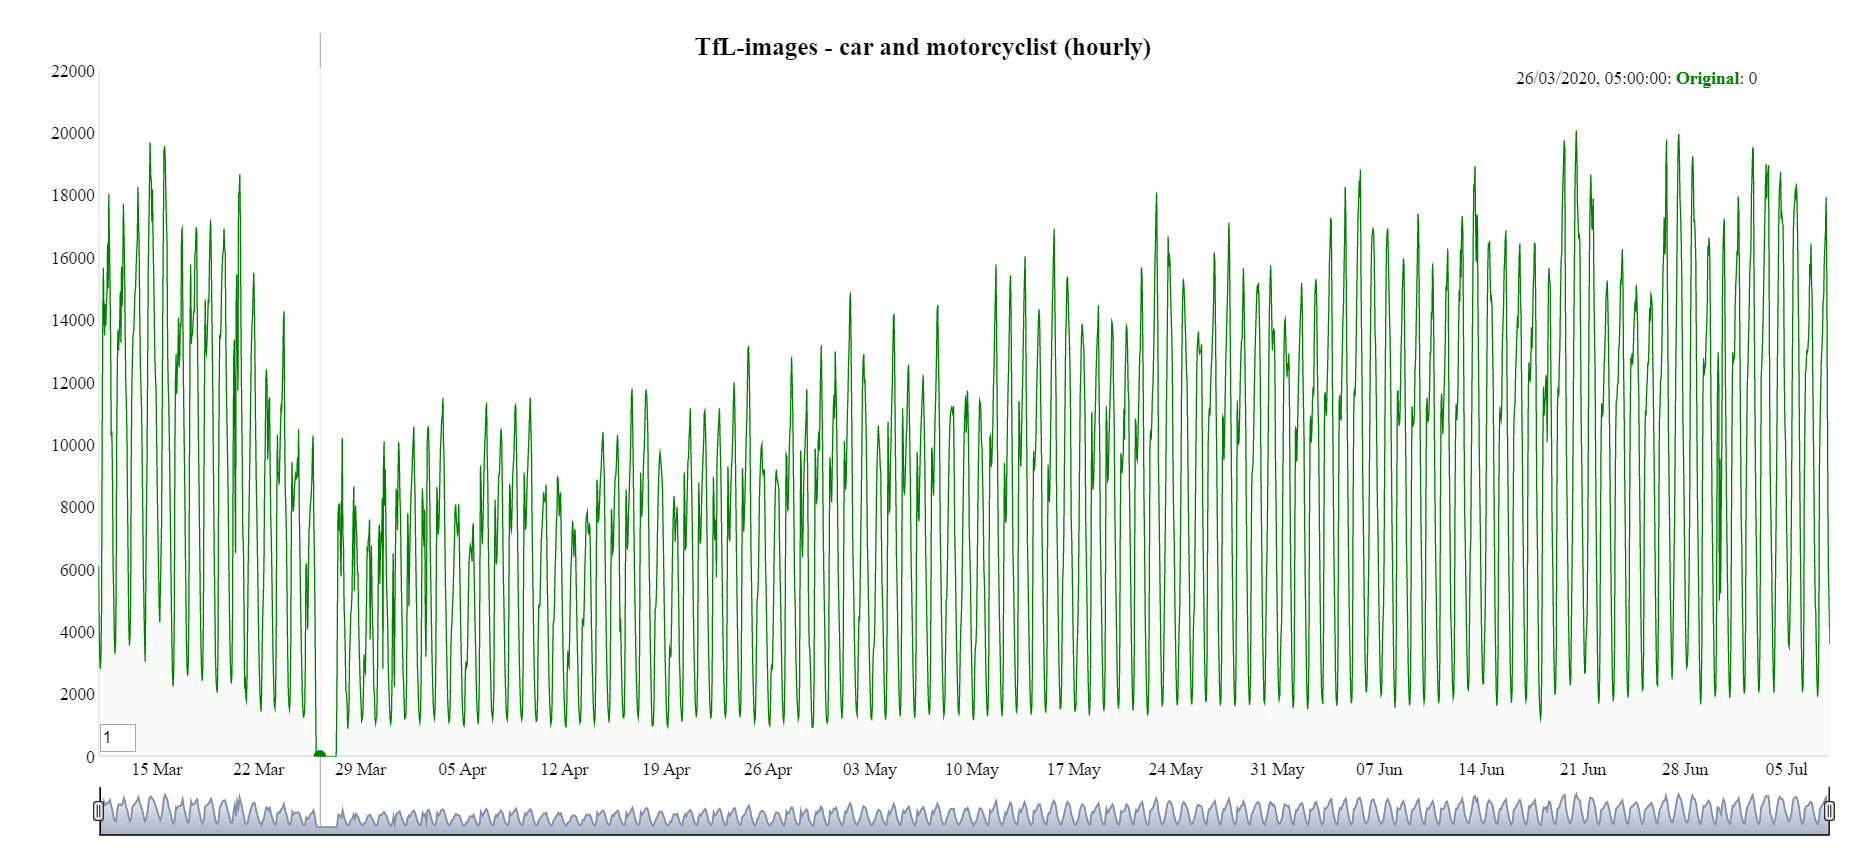 A line chart showing a break in the time series in Transport for London images.